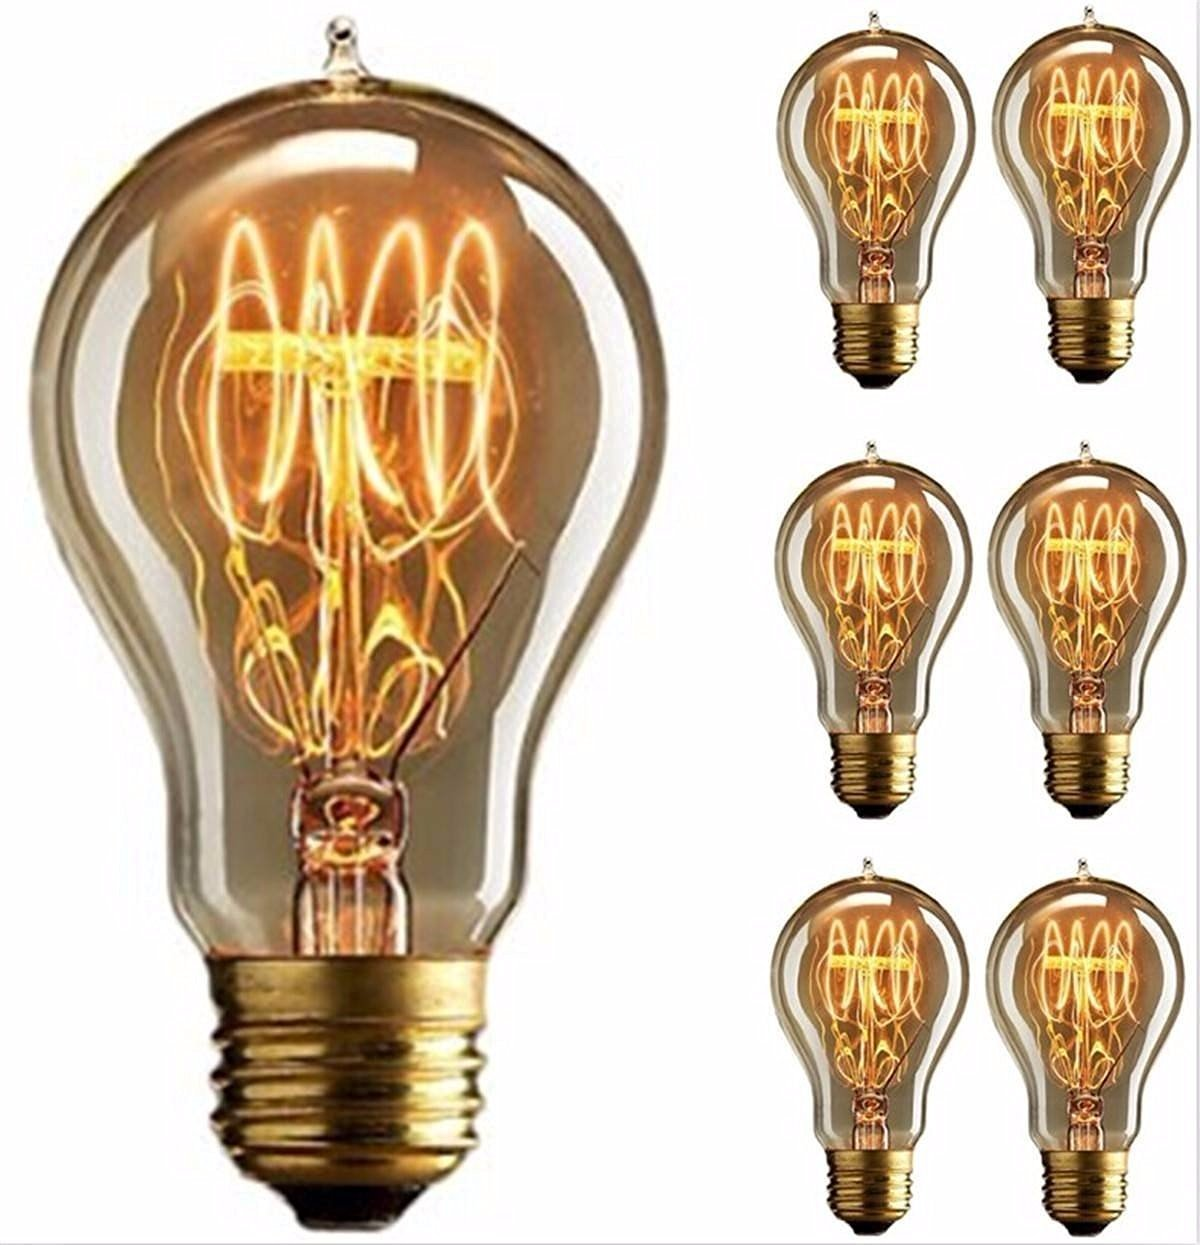 Edison Bulb, FadimiKoo Vintage Bulb 110v 60W Dimmable A19 Squirrel Cage Filament Edison Lihgt Bulb for Home Light Fixtures Decorative, Pack of 6 3